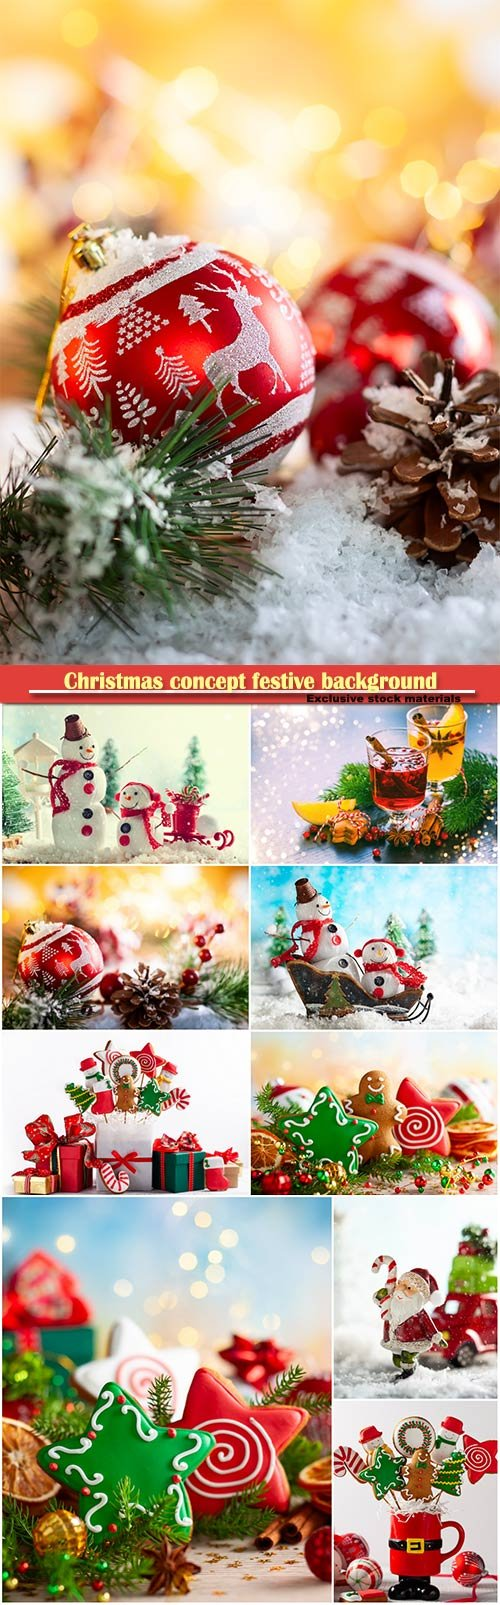 Christmas concept festive background